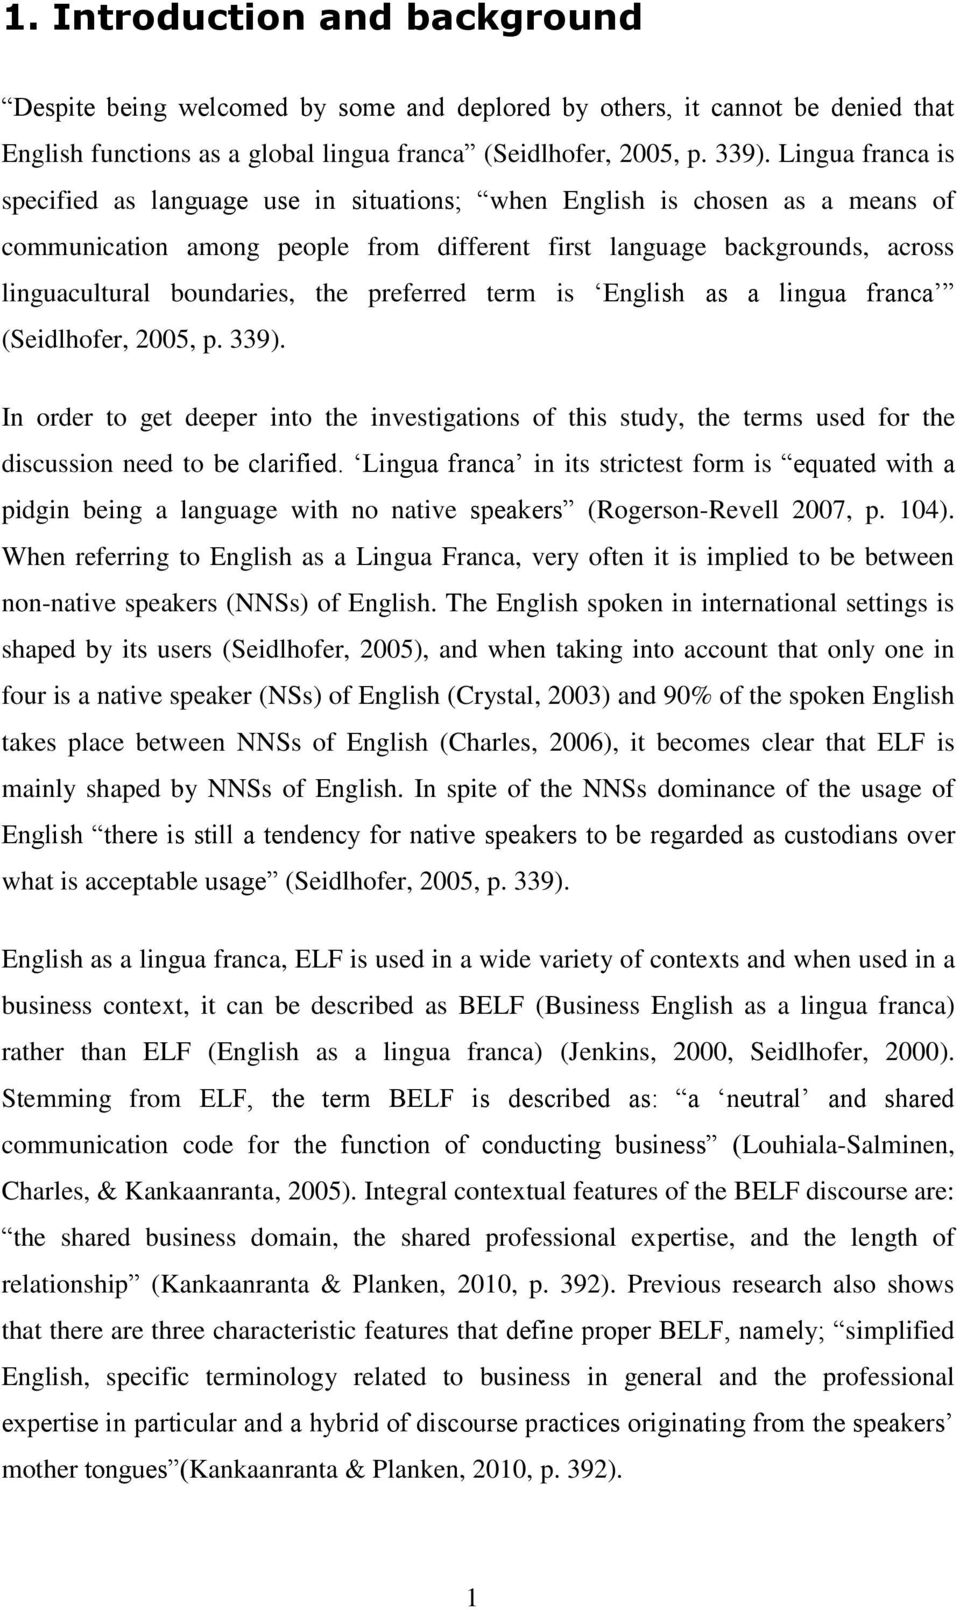 the preferred term is English as a lingua franca (Seidlhofer, 2005, p. 339). In order to get deeper into the investigations of this study, the terms used for the discussion need to be clarified.